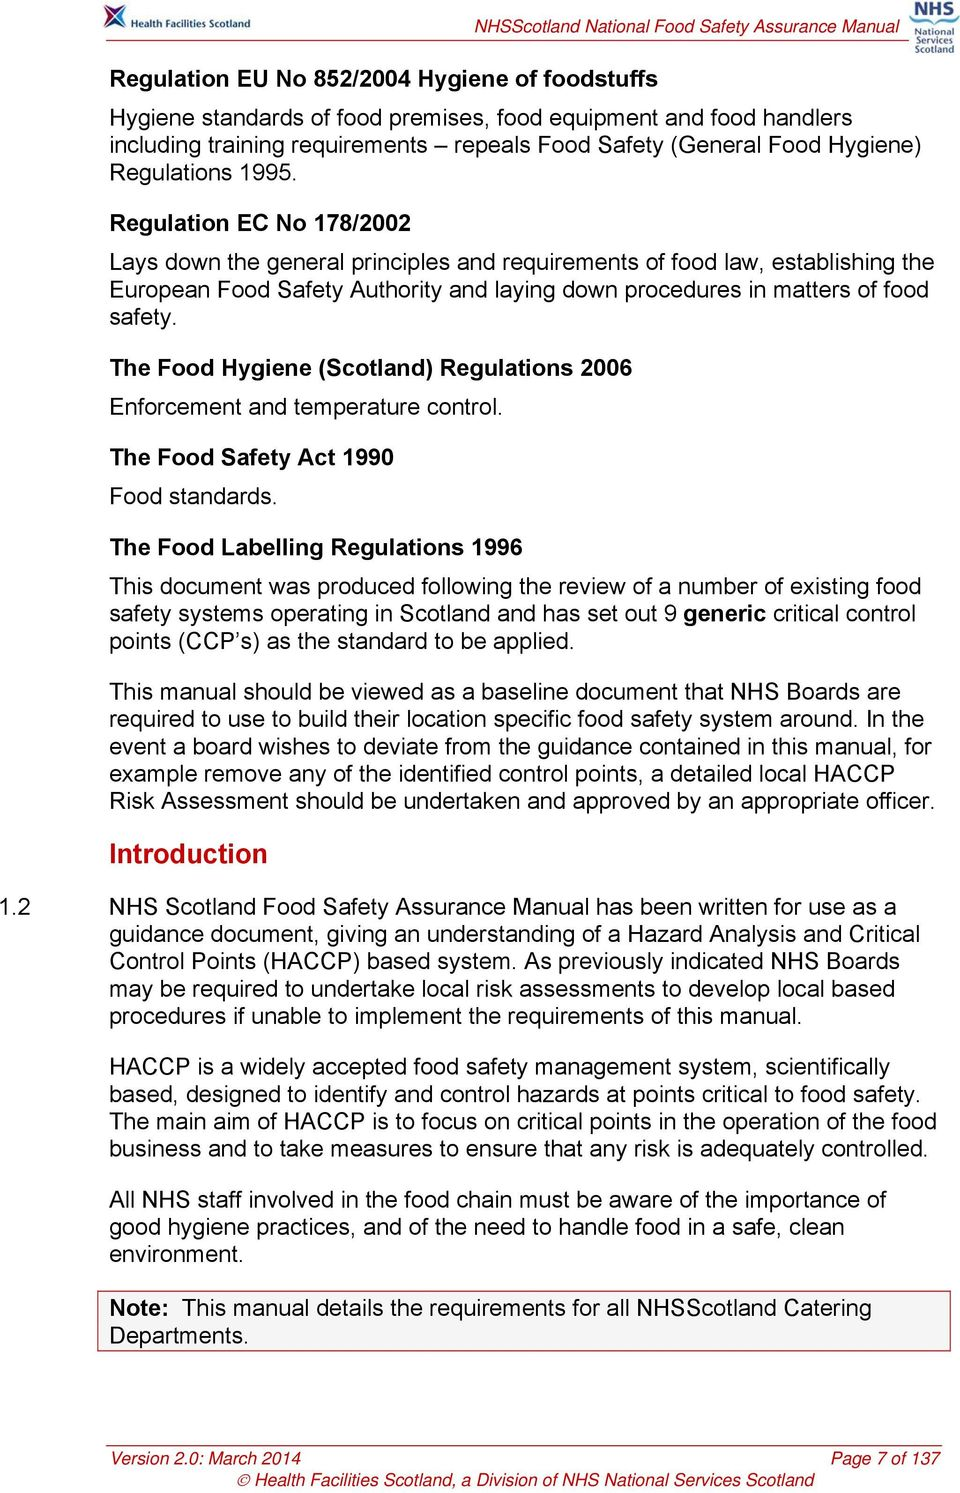 Nhsscotland National Food Safety Assurance Manual Pdf Free